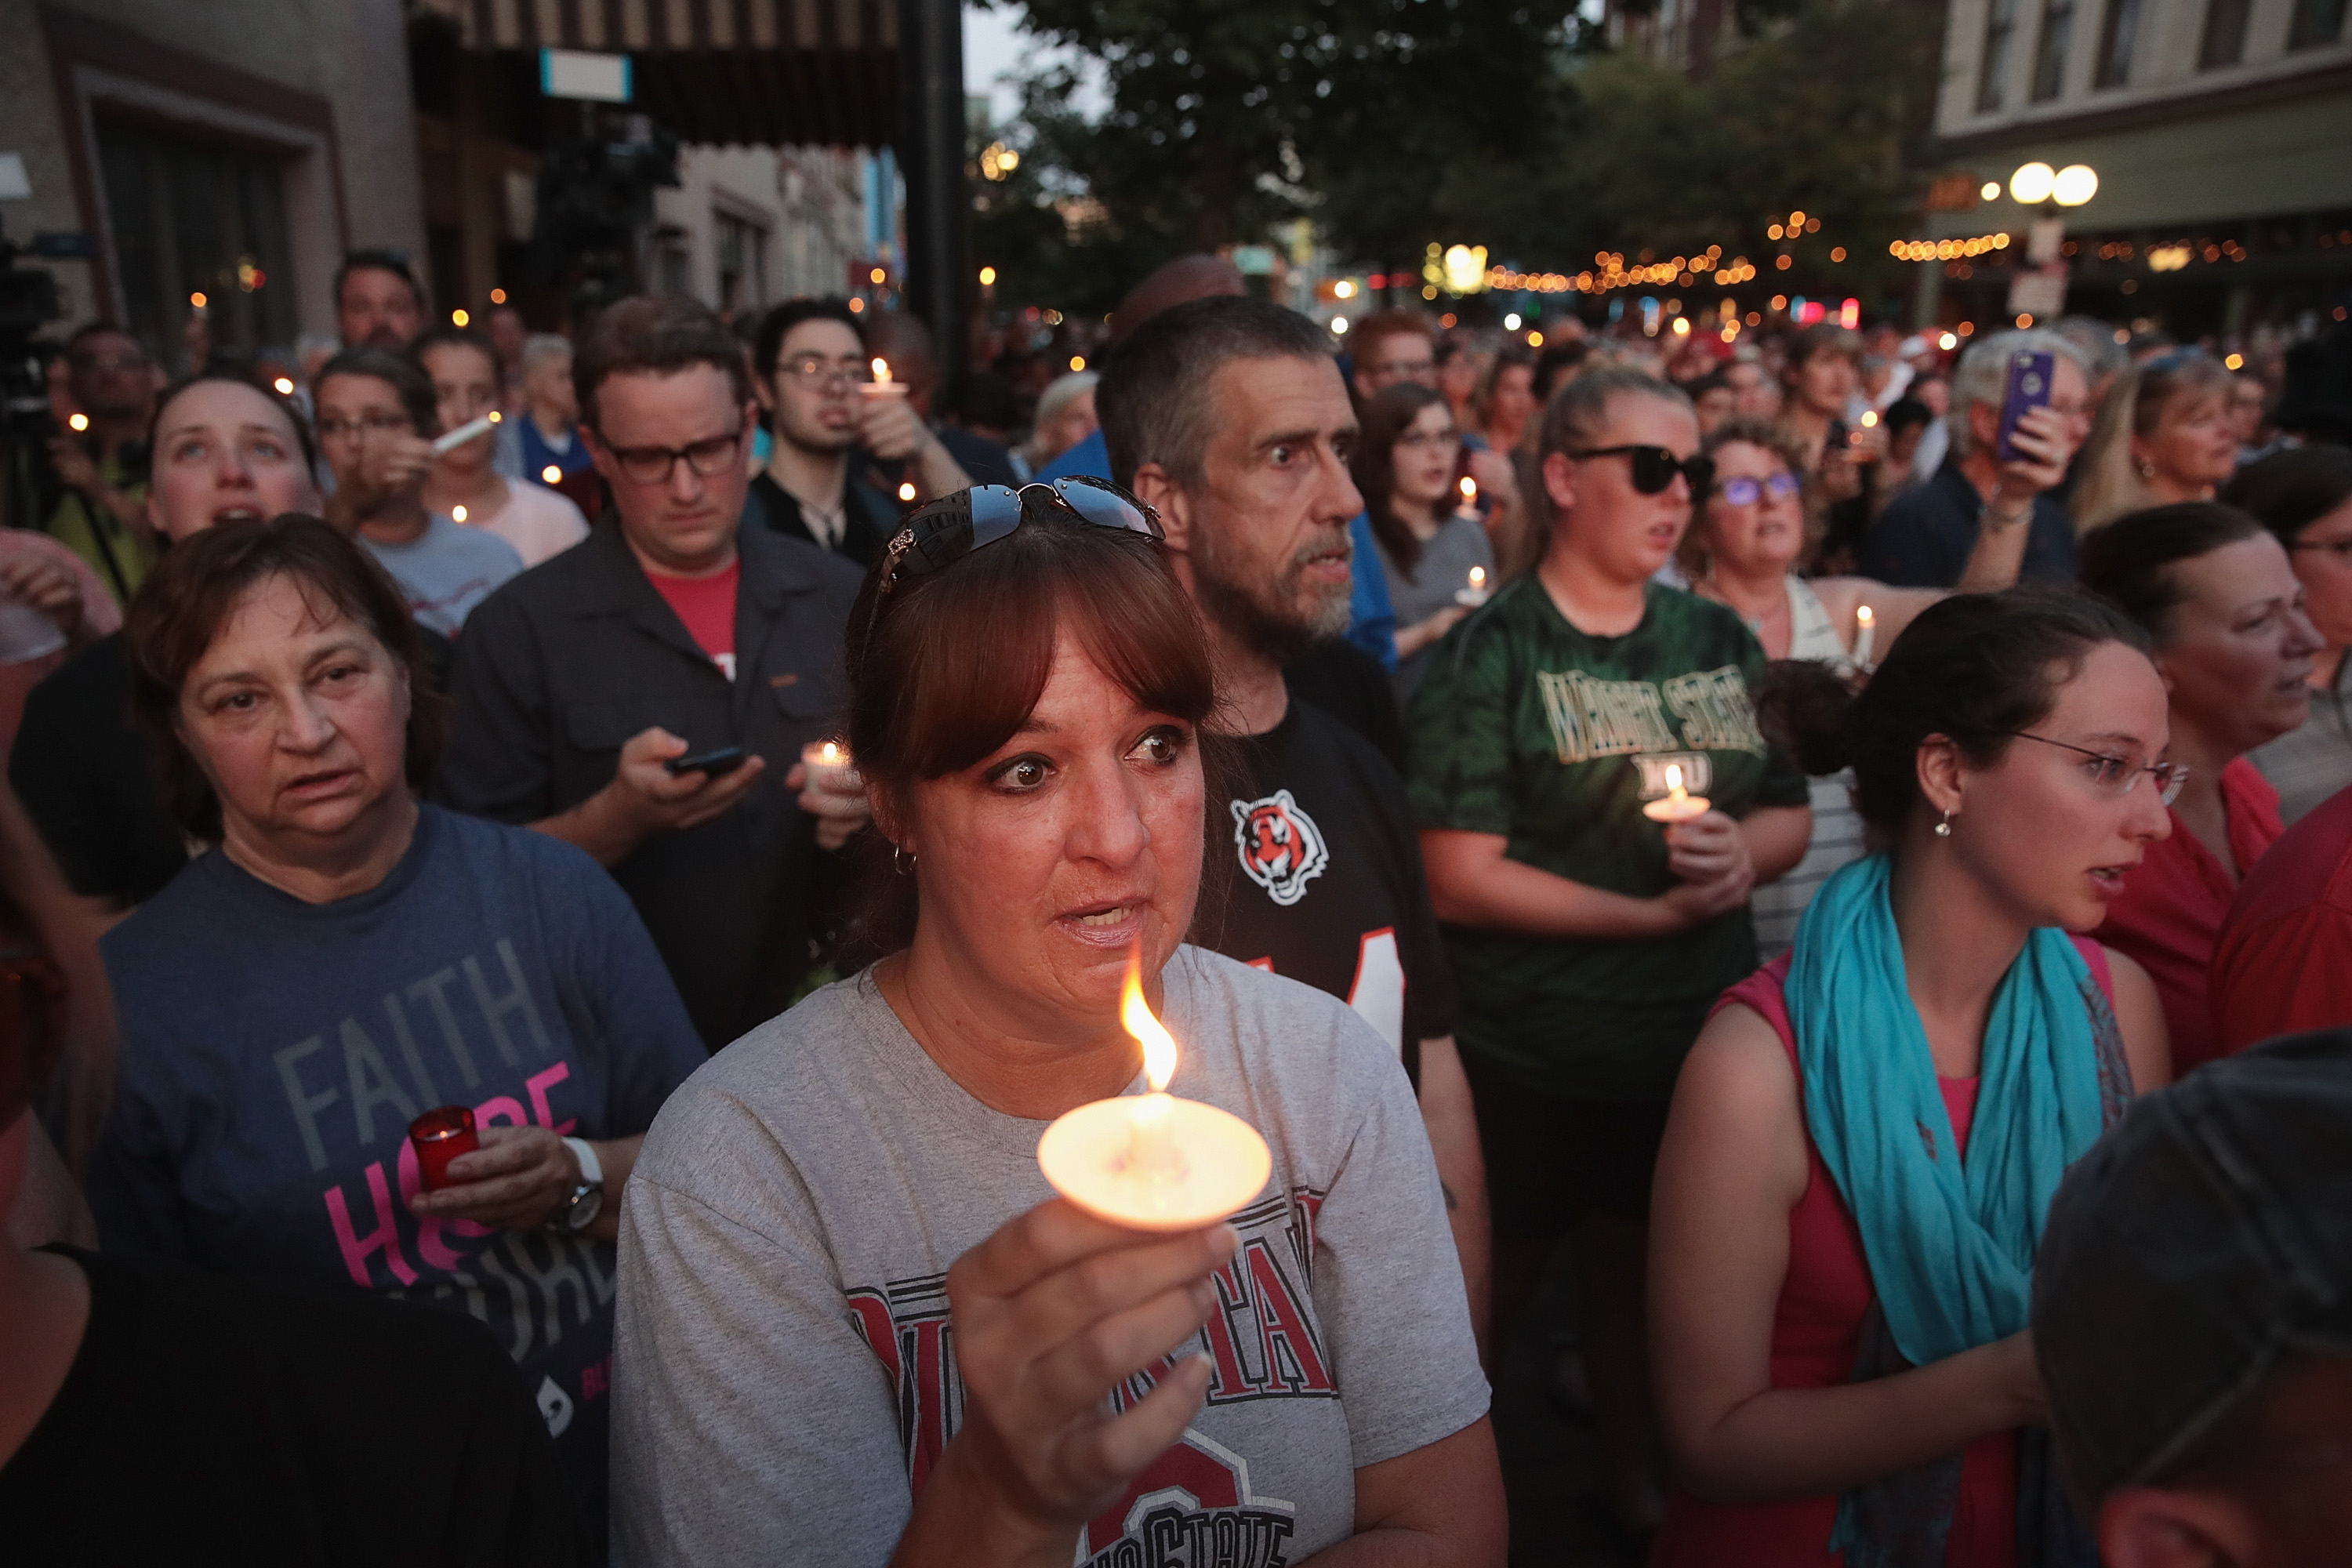 Mourners attend a memorial service in the Oregon District to recognize the victims of an early-morning mass shooting in the popular nightspot on August 04, 2019 in Dayton, Ohio. (Photo by Scott Olson/Getty Images)